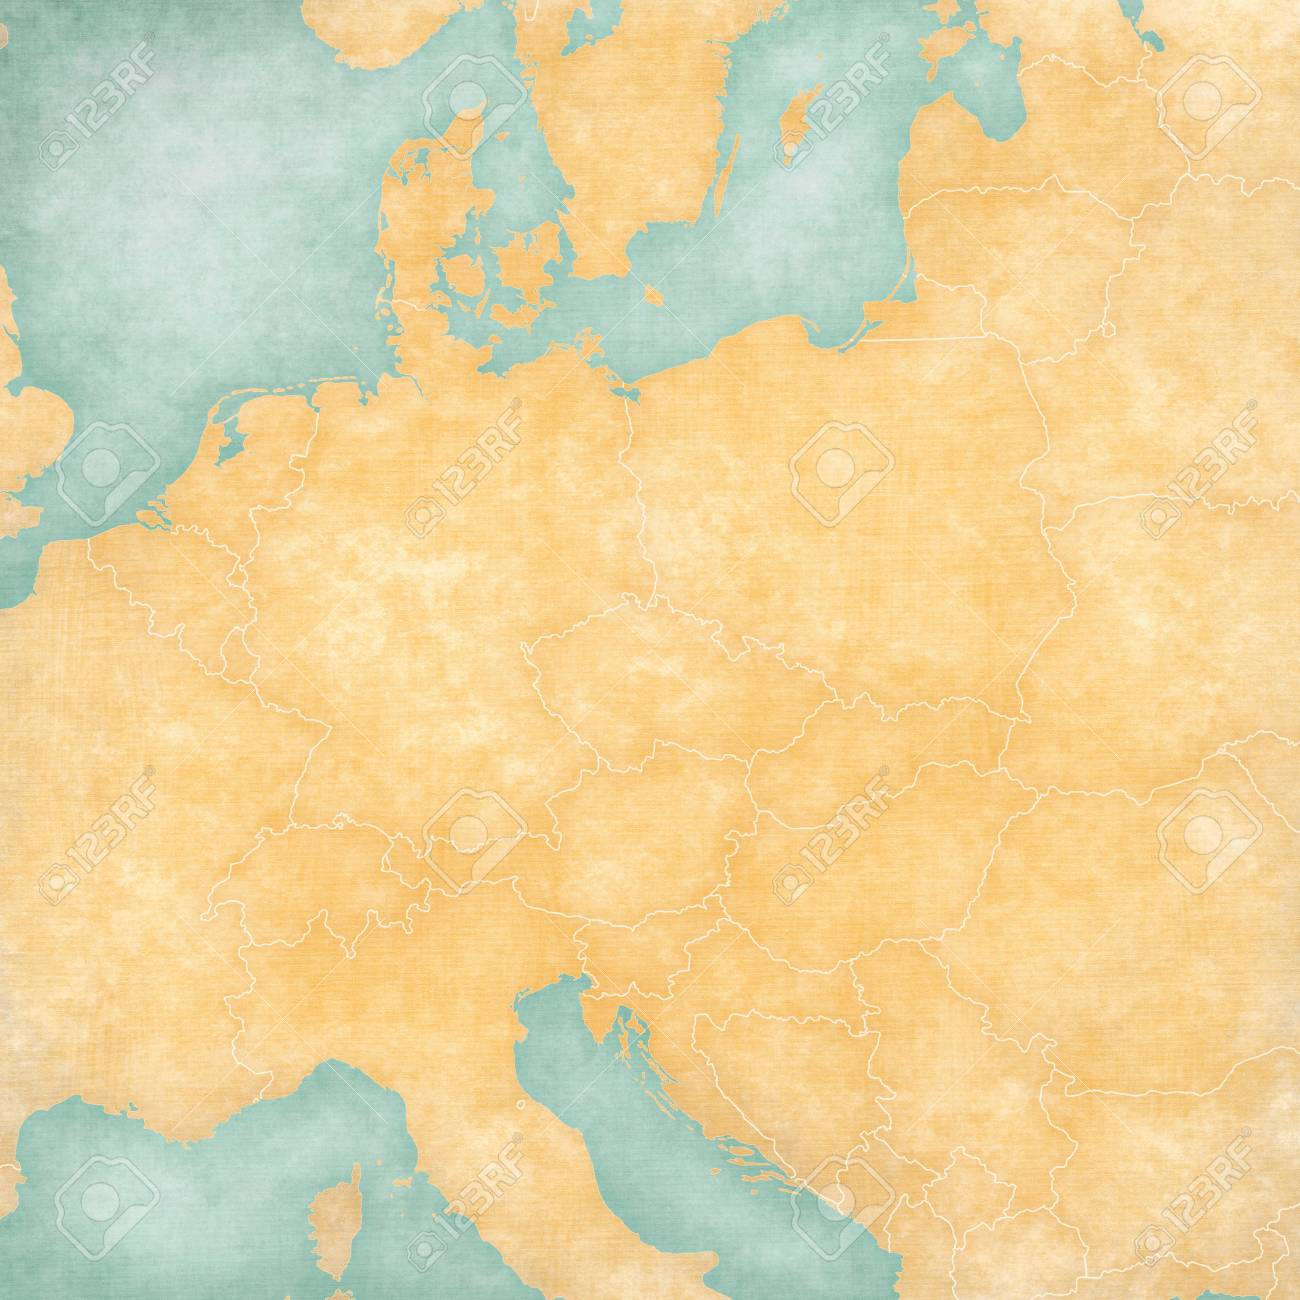 Blank Map Of Central Europe With Country Borders In Soft Grunge Stock Photo Picture And Royalty Free Image Image 102344123